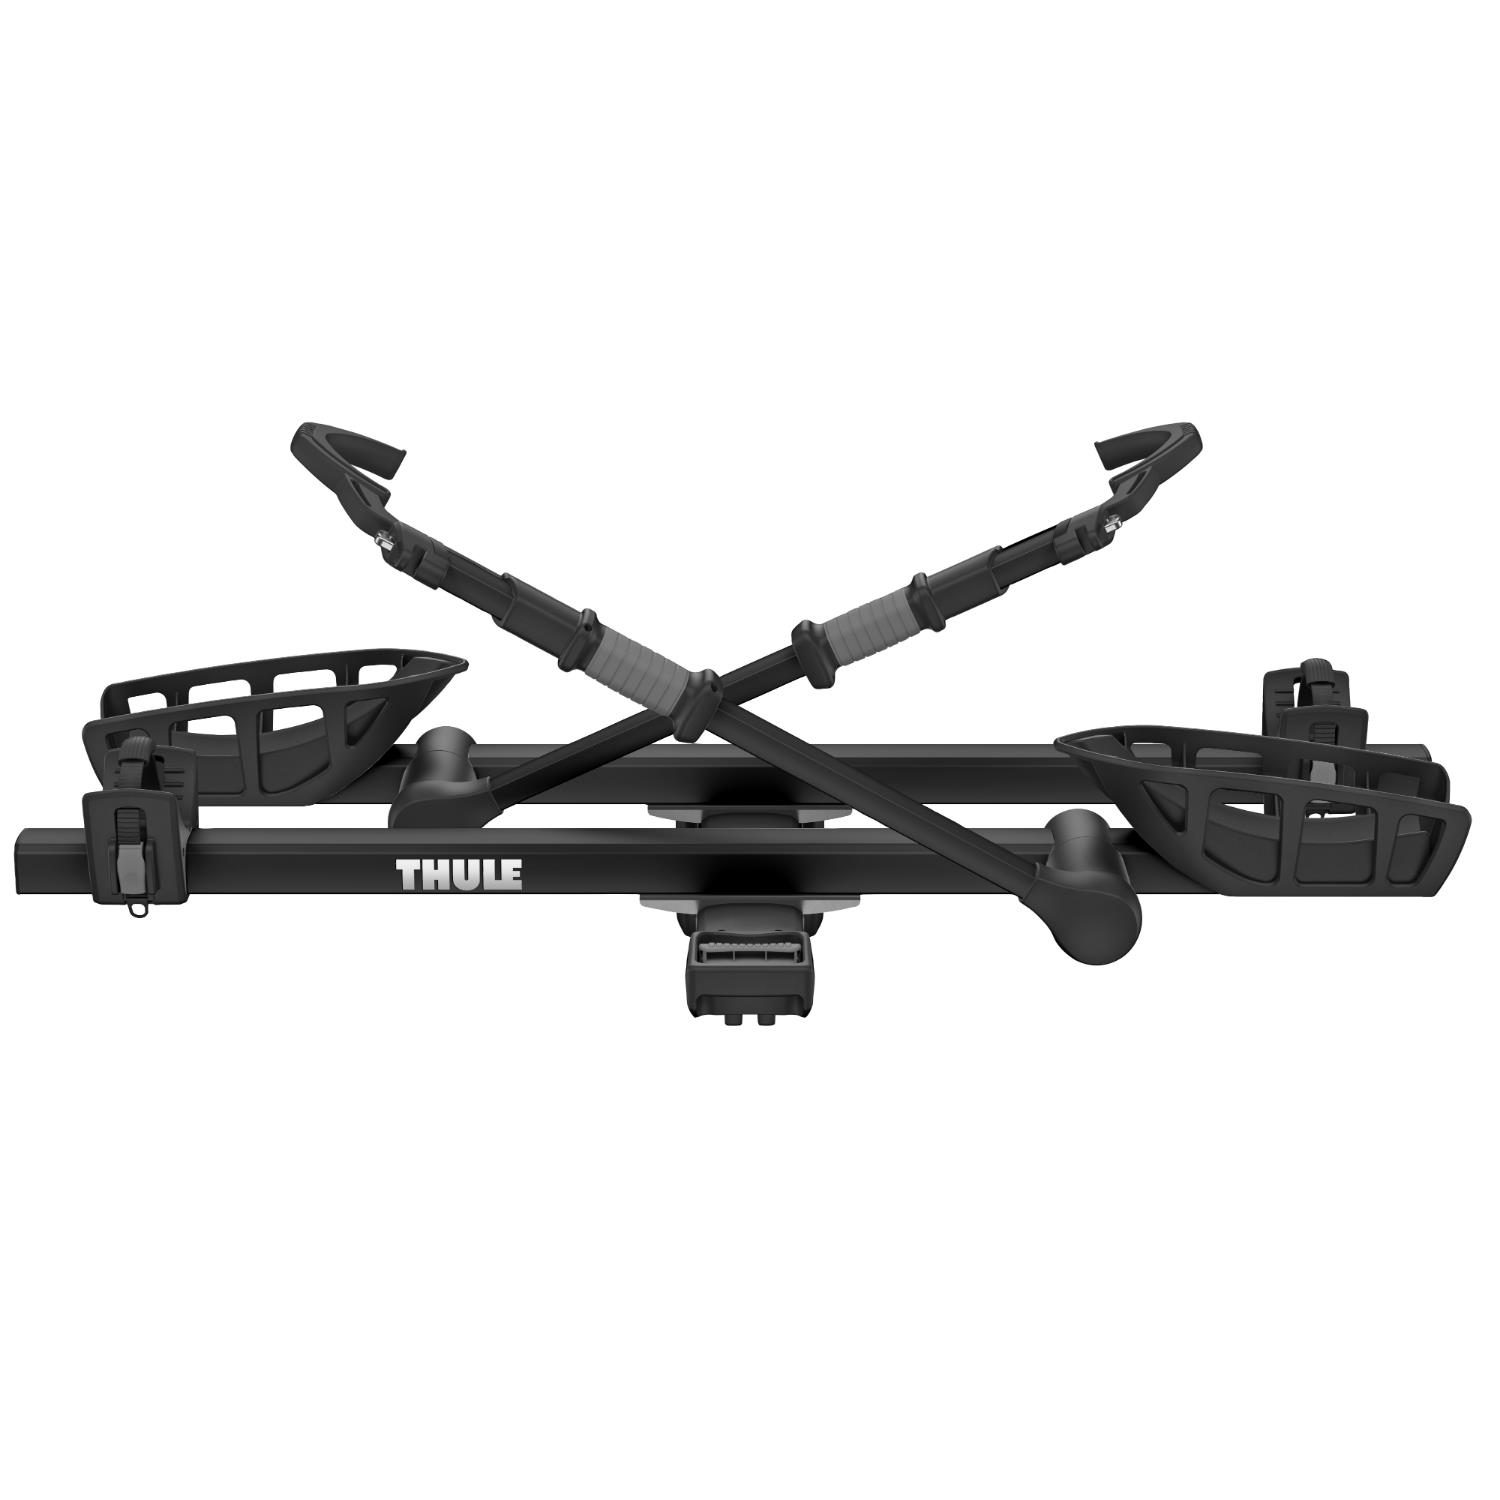 Receiver Hitch Bike Rack >> U Haul Thule T2 Pro Xt 2 Bike Rack Black 2 Receiver